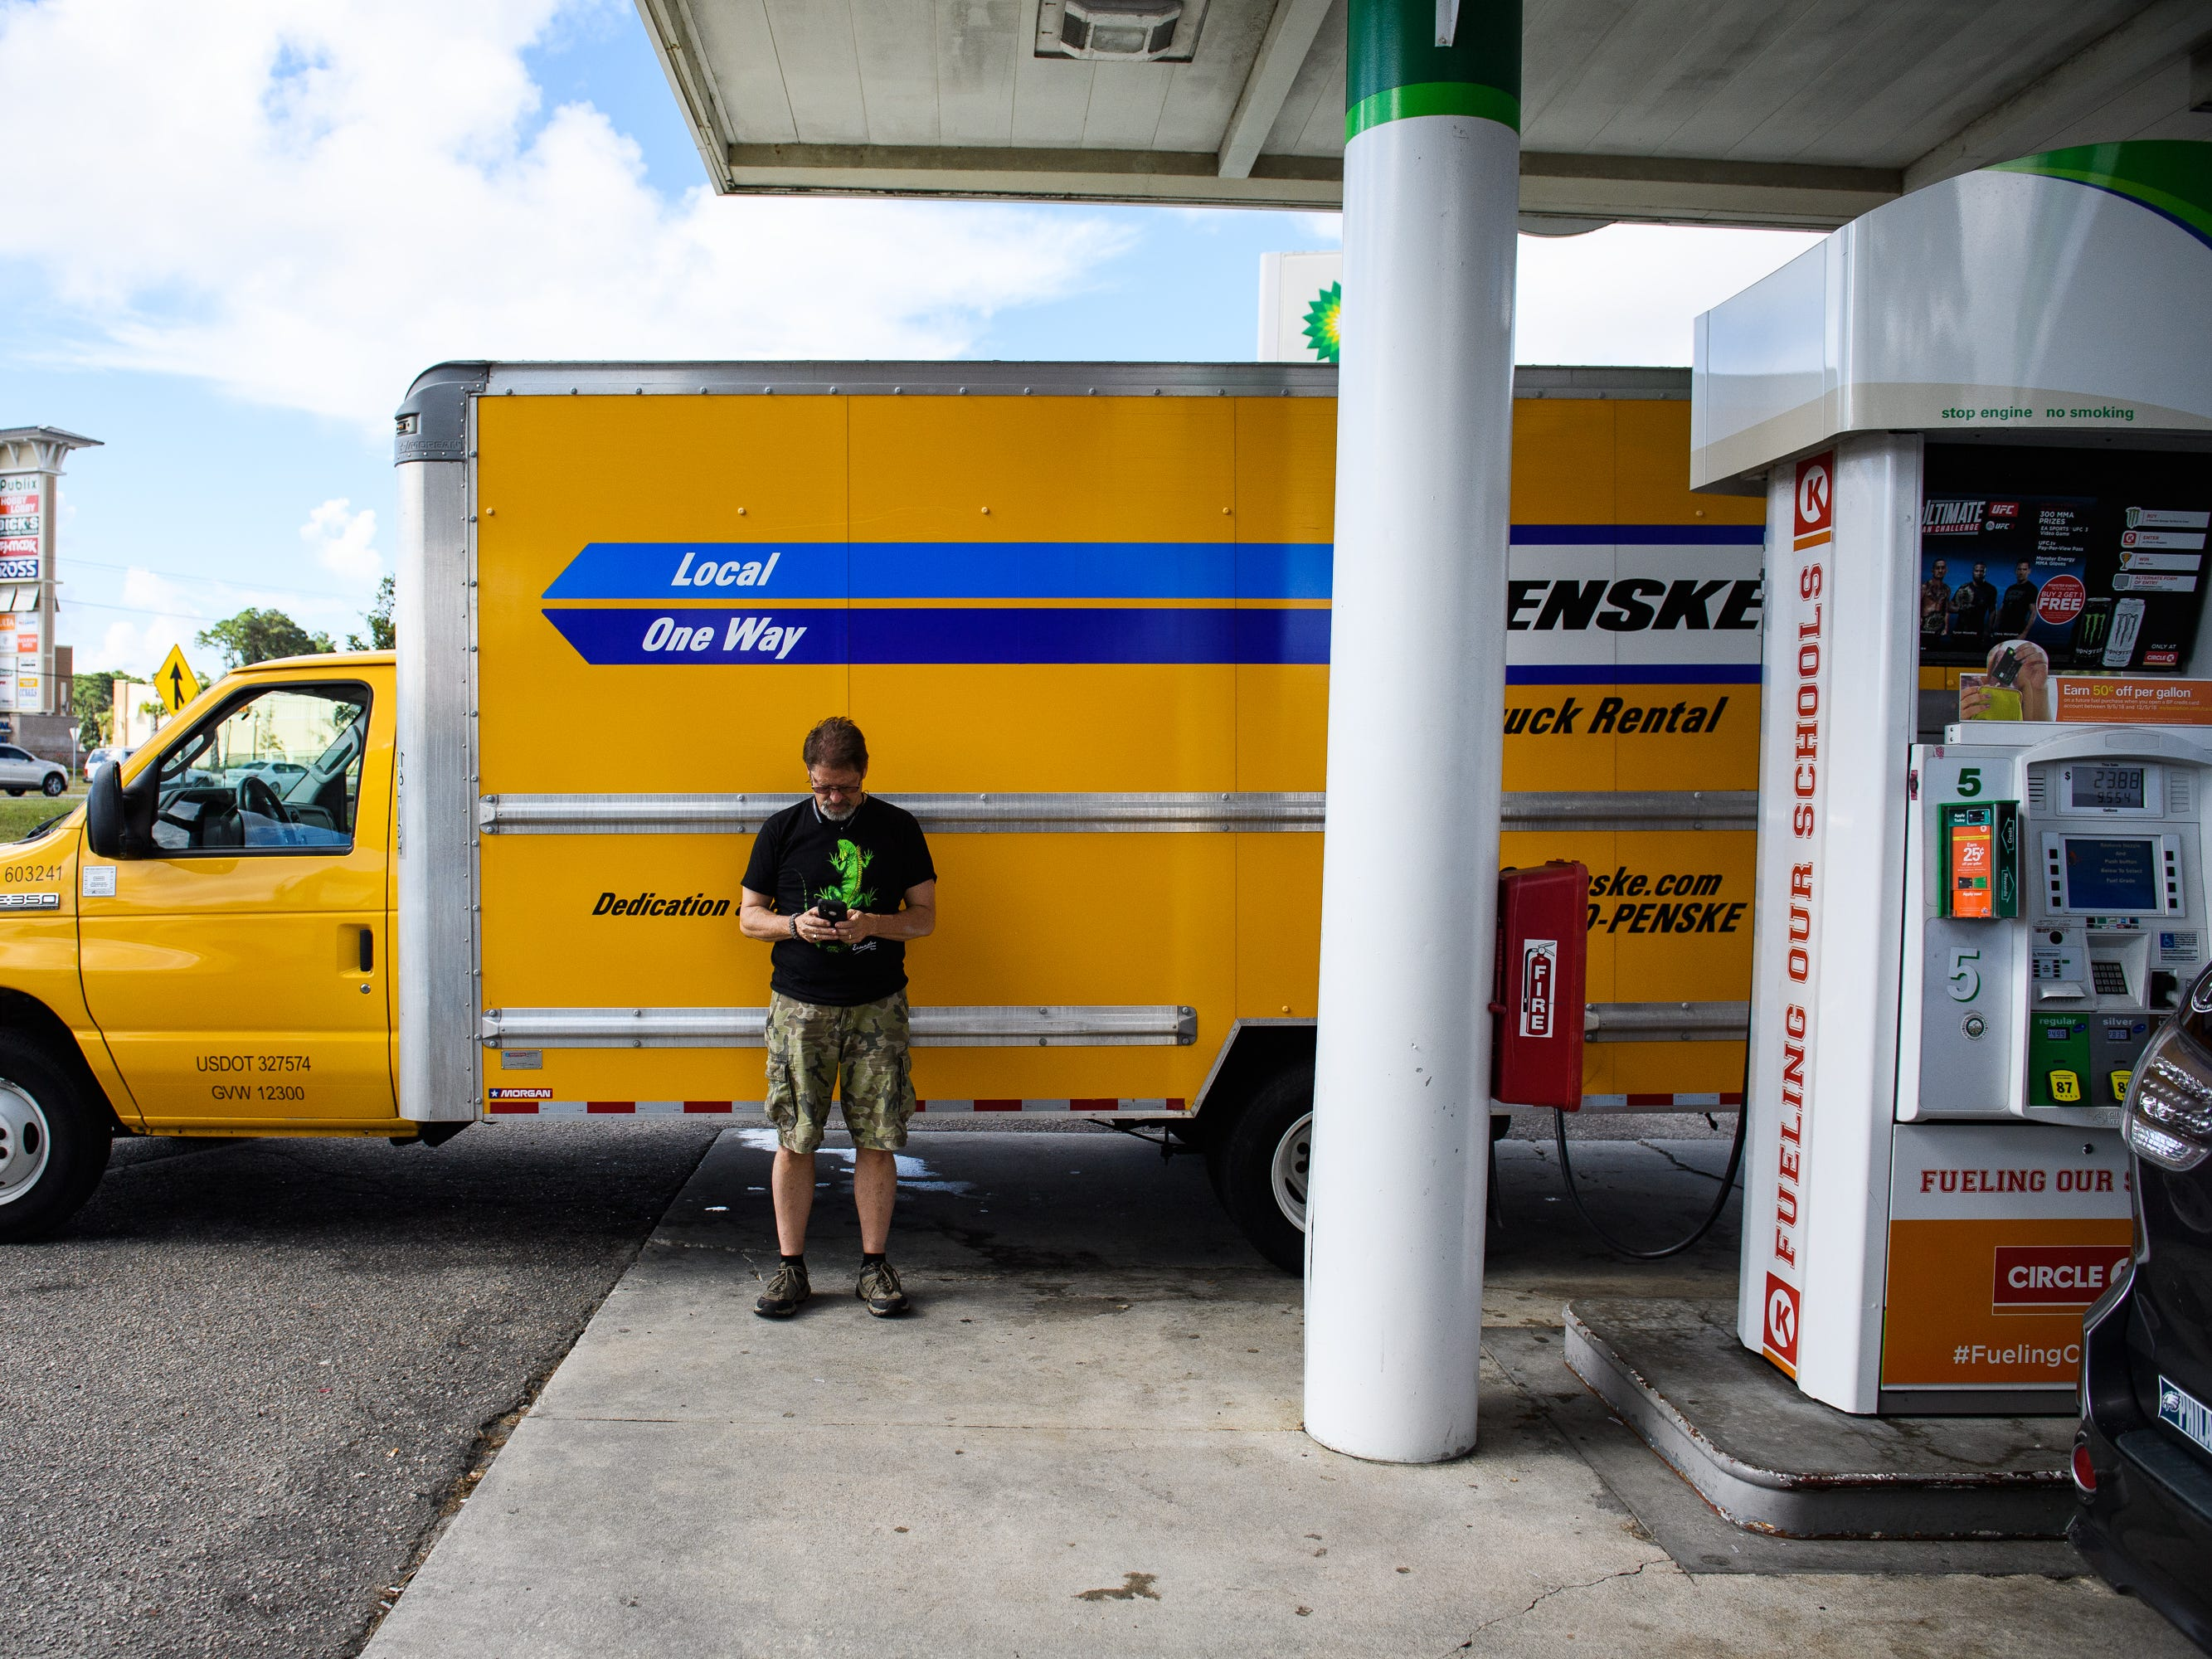 Eric Oakley of North Myrtle Beach fills up his moving truck hours before the official evacuation begins on Tuesday, Sept. 11, 2018. Oakley said he and his family will be evacuating their home.